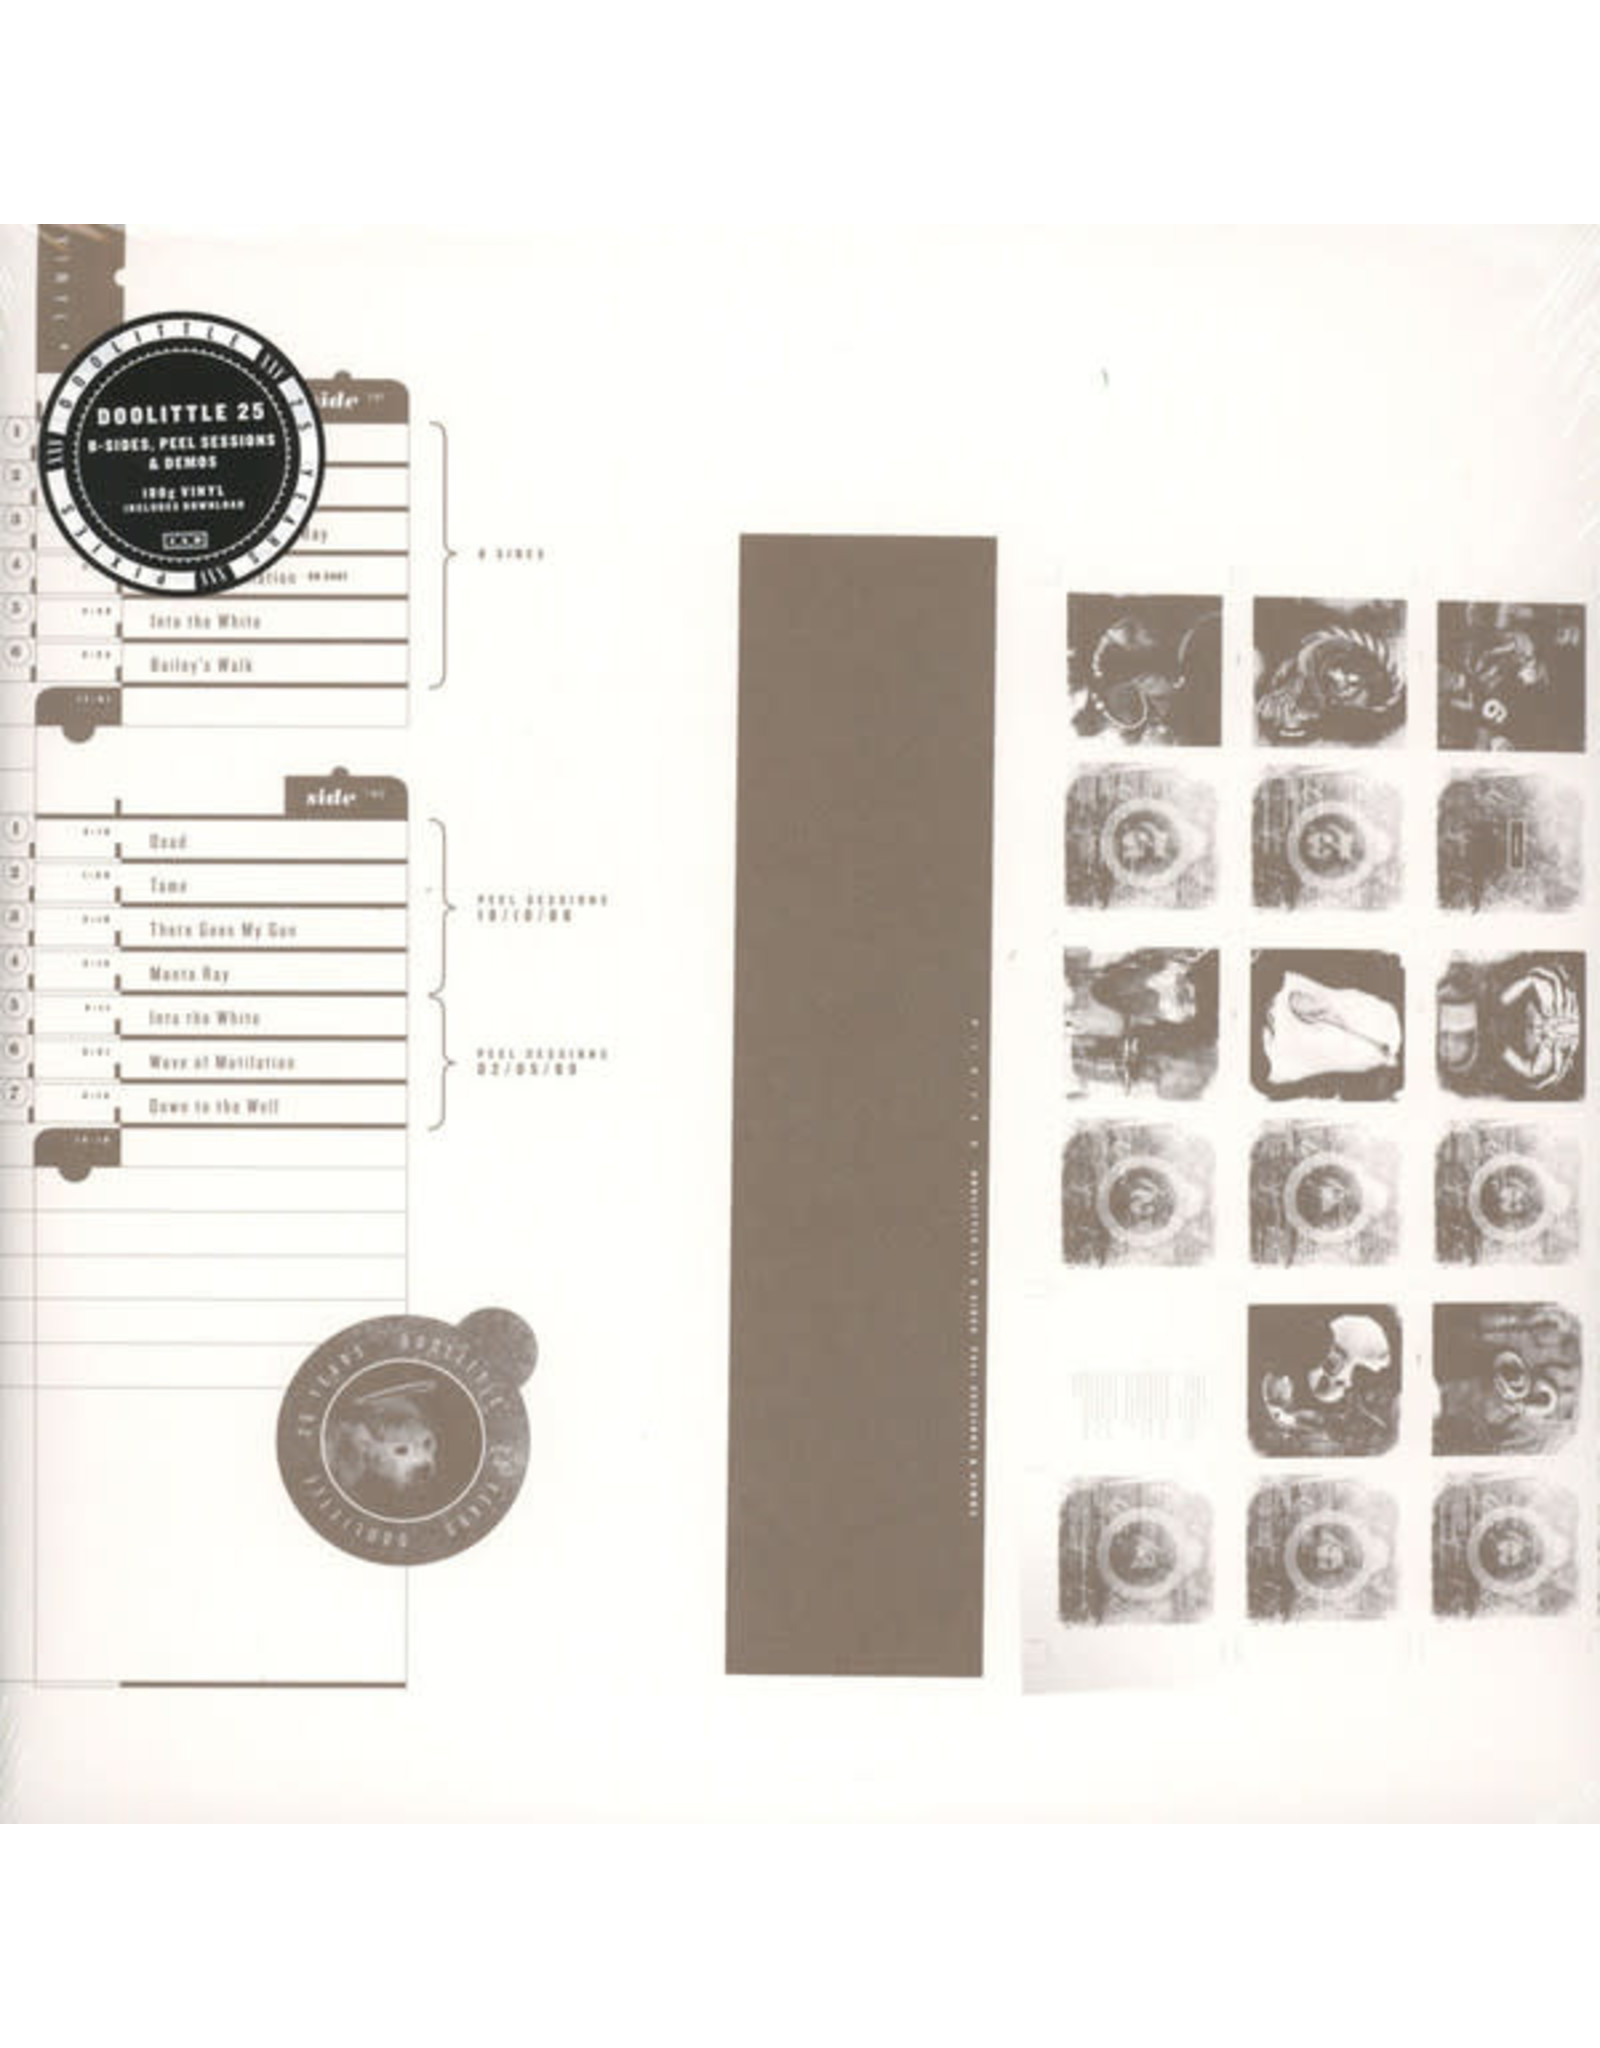 Pixies - Doolittle 25: B-Sides, Peel Sessions and Demos LP